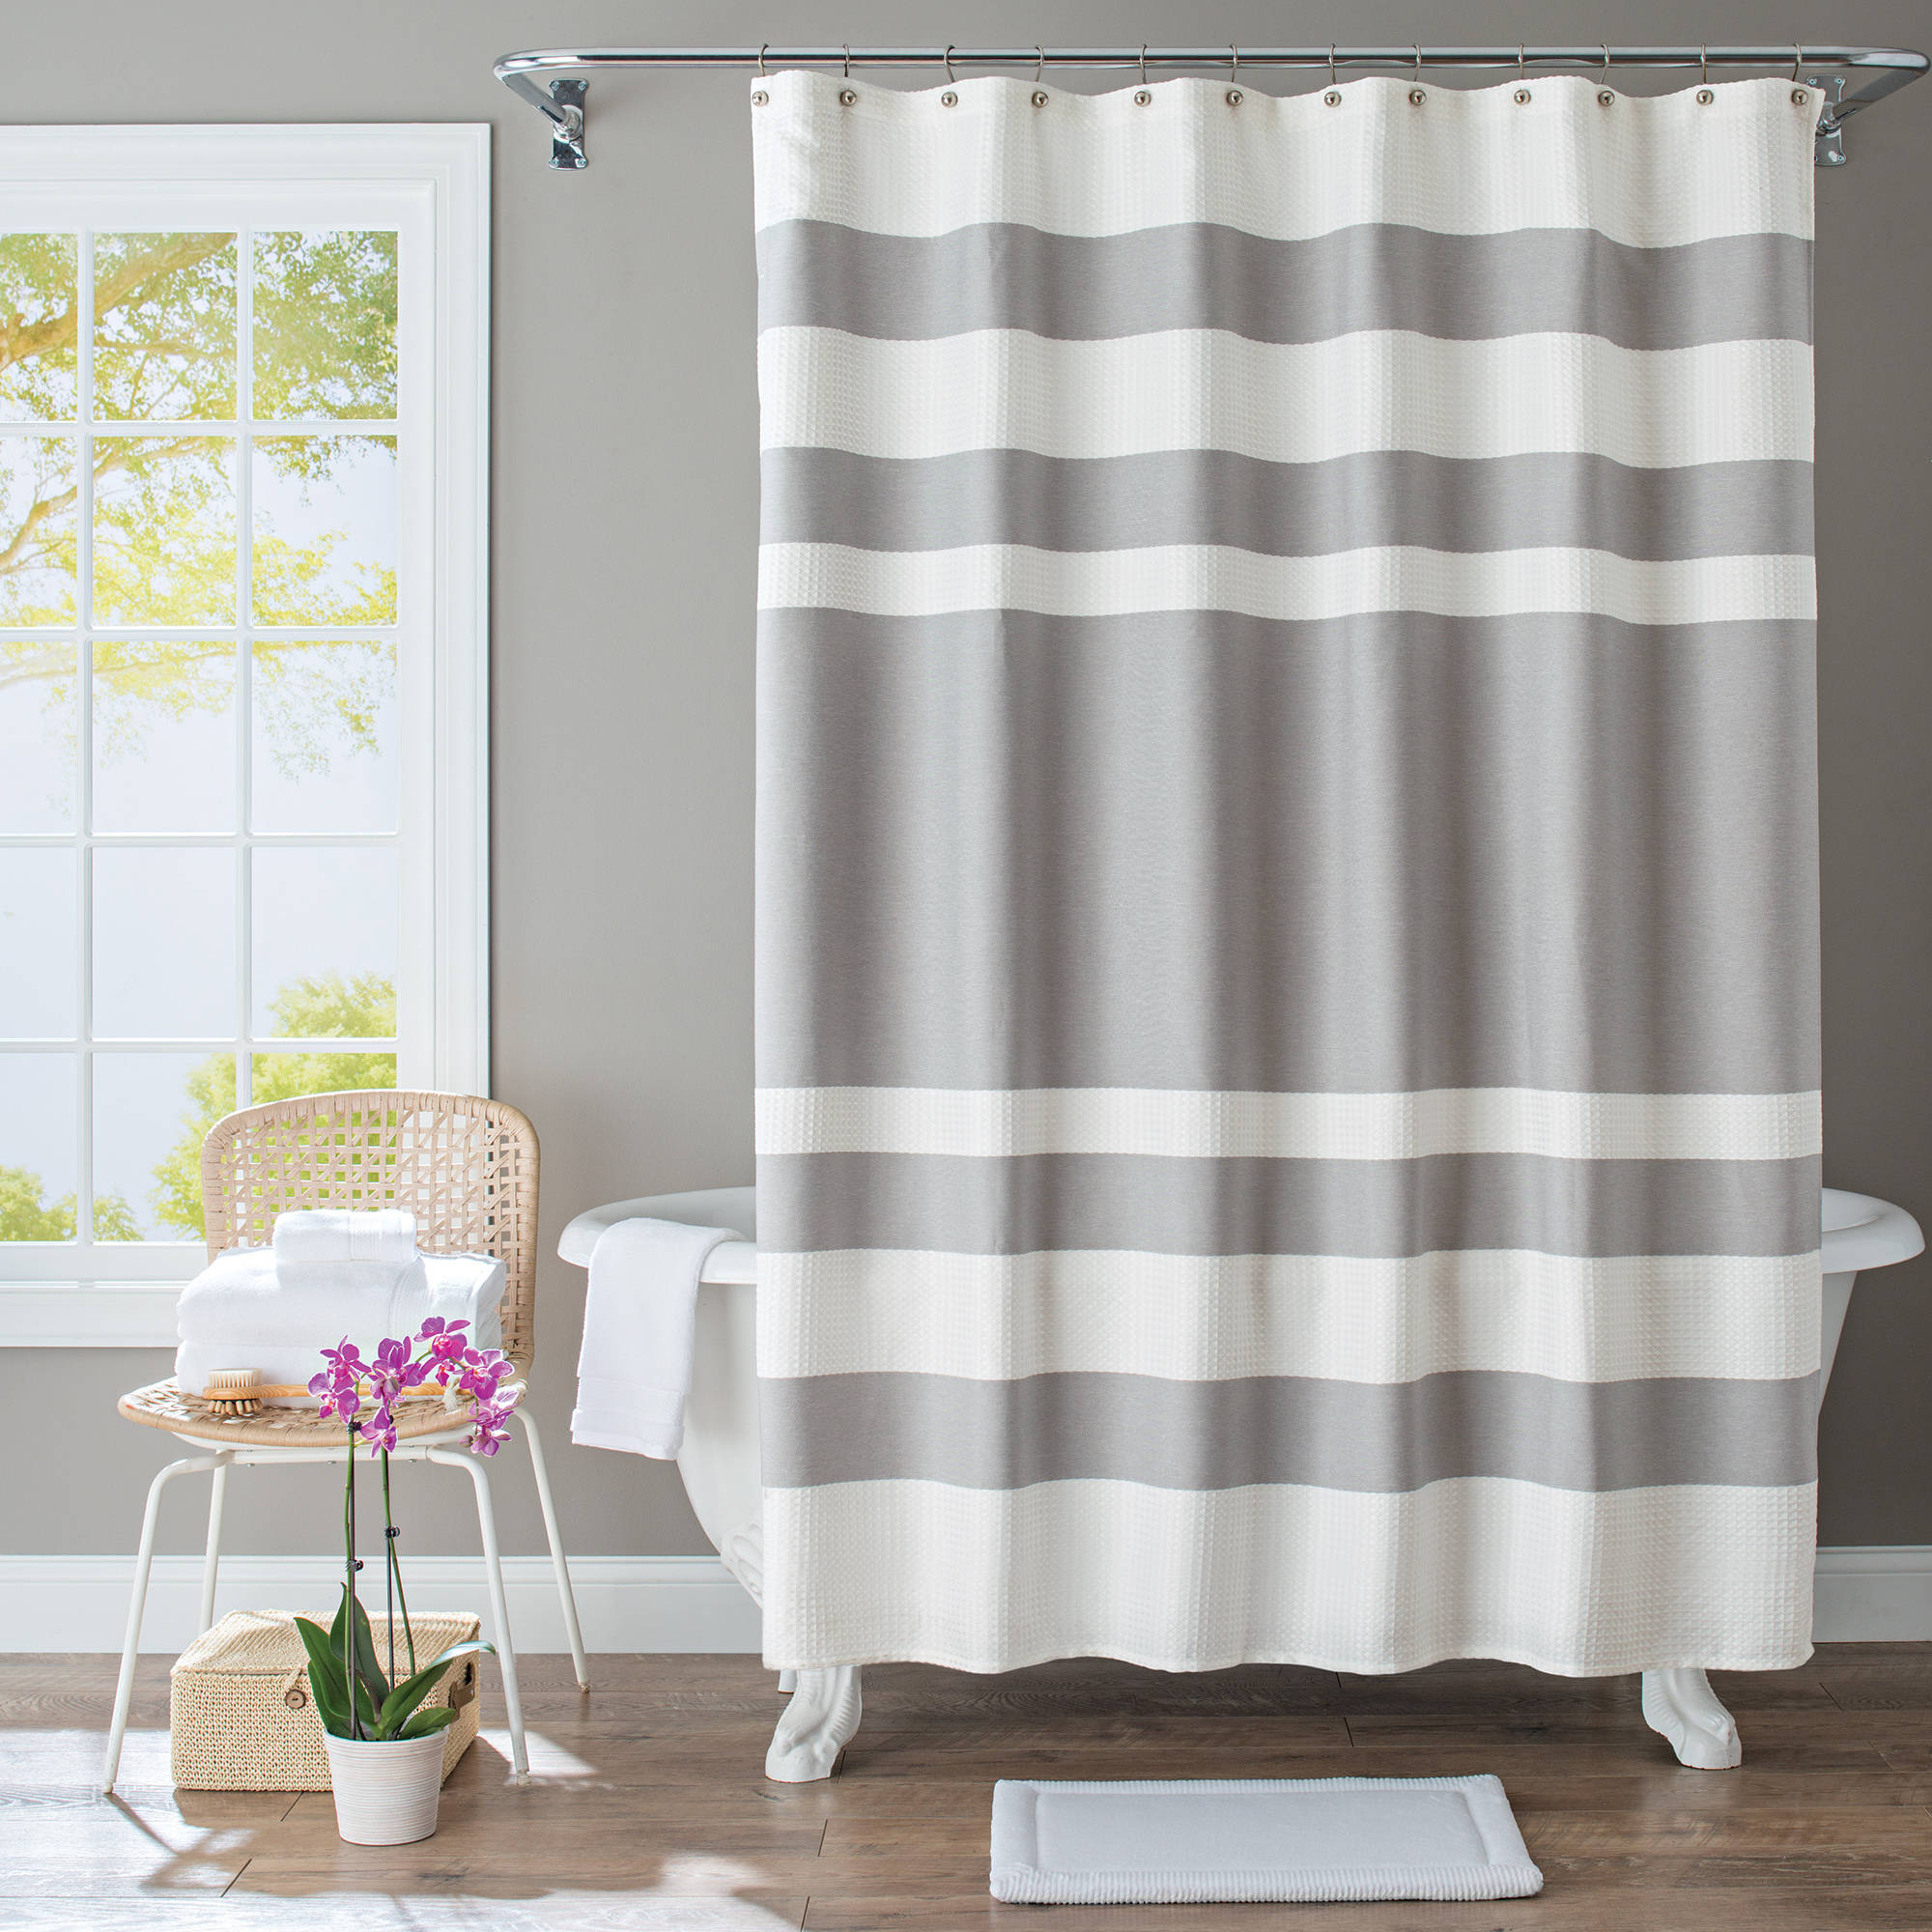 brown and white shower curtain. Better Homes and Gardens Waffle Stripe Fabric Shower Curtain  Walmart com